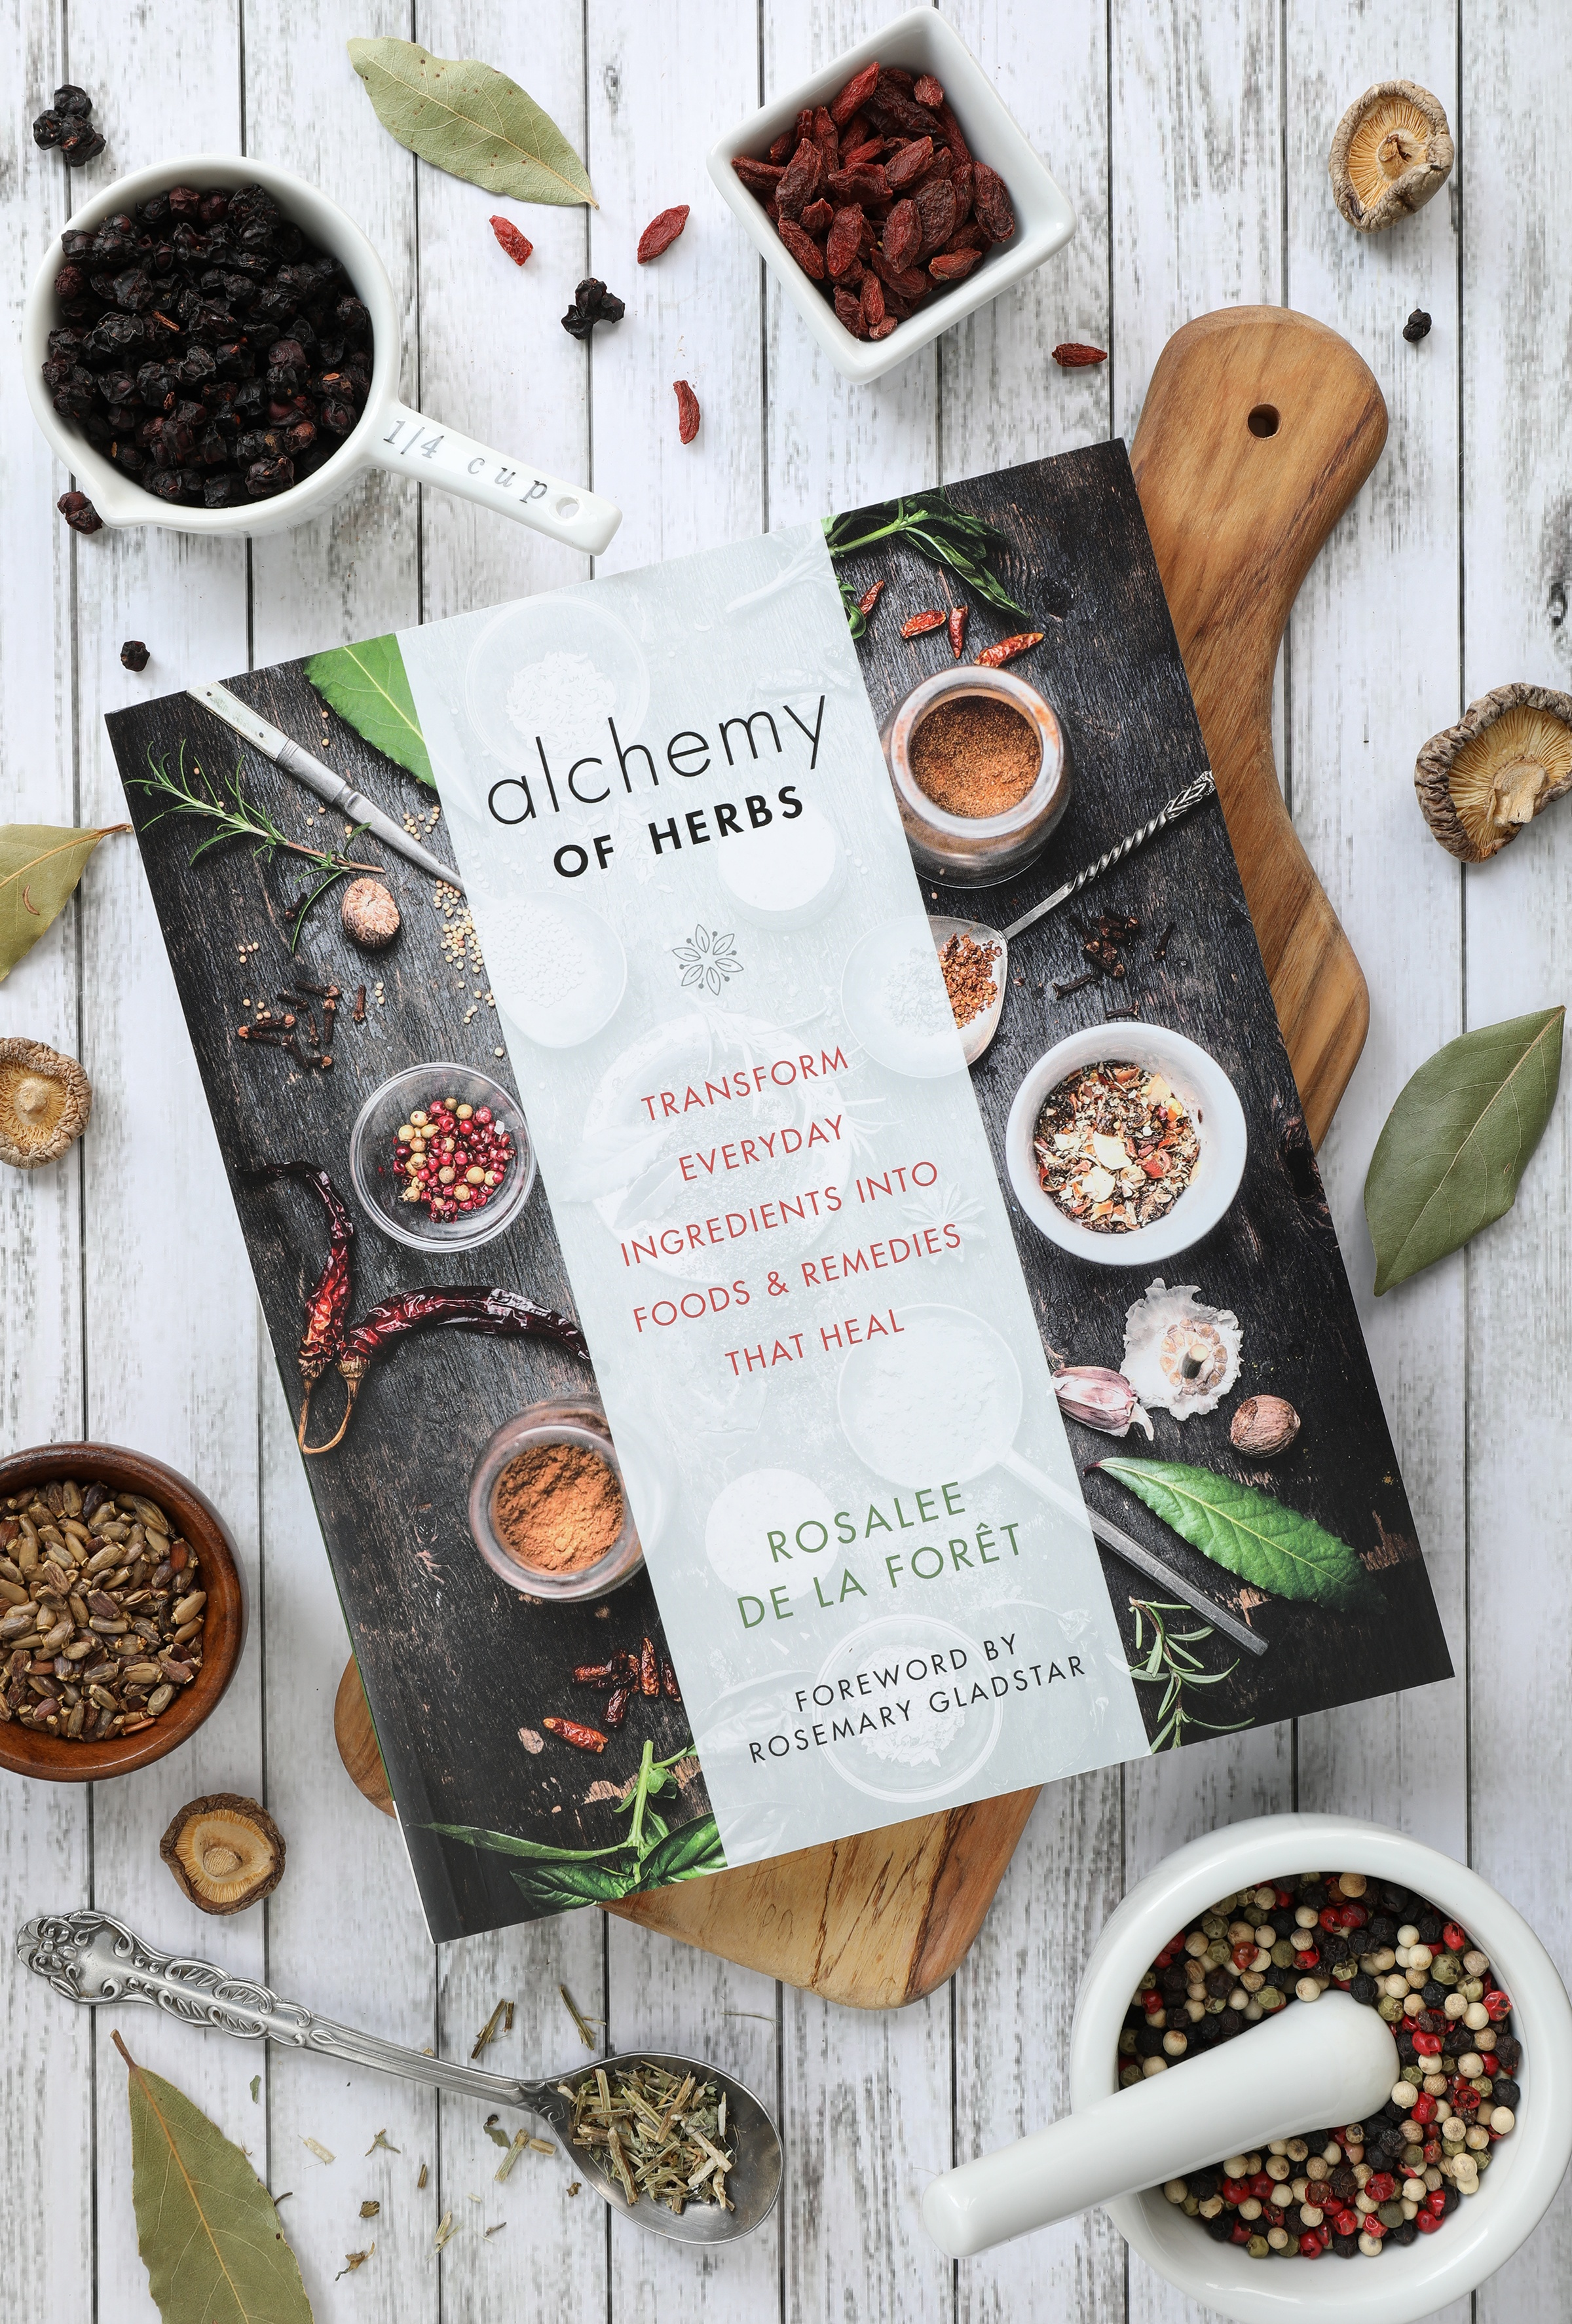 Alchemy of Herbs by Rosalee De La Foret book cover sitting on counter with cooking ingredients and cutting board